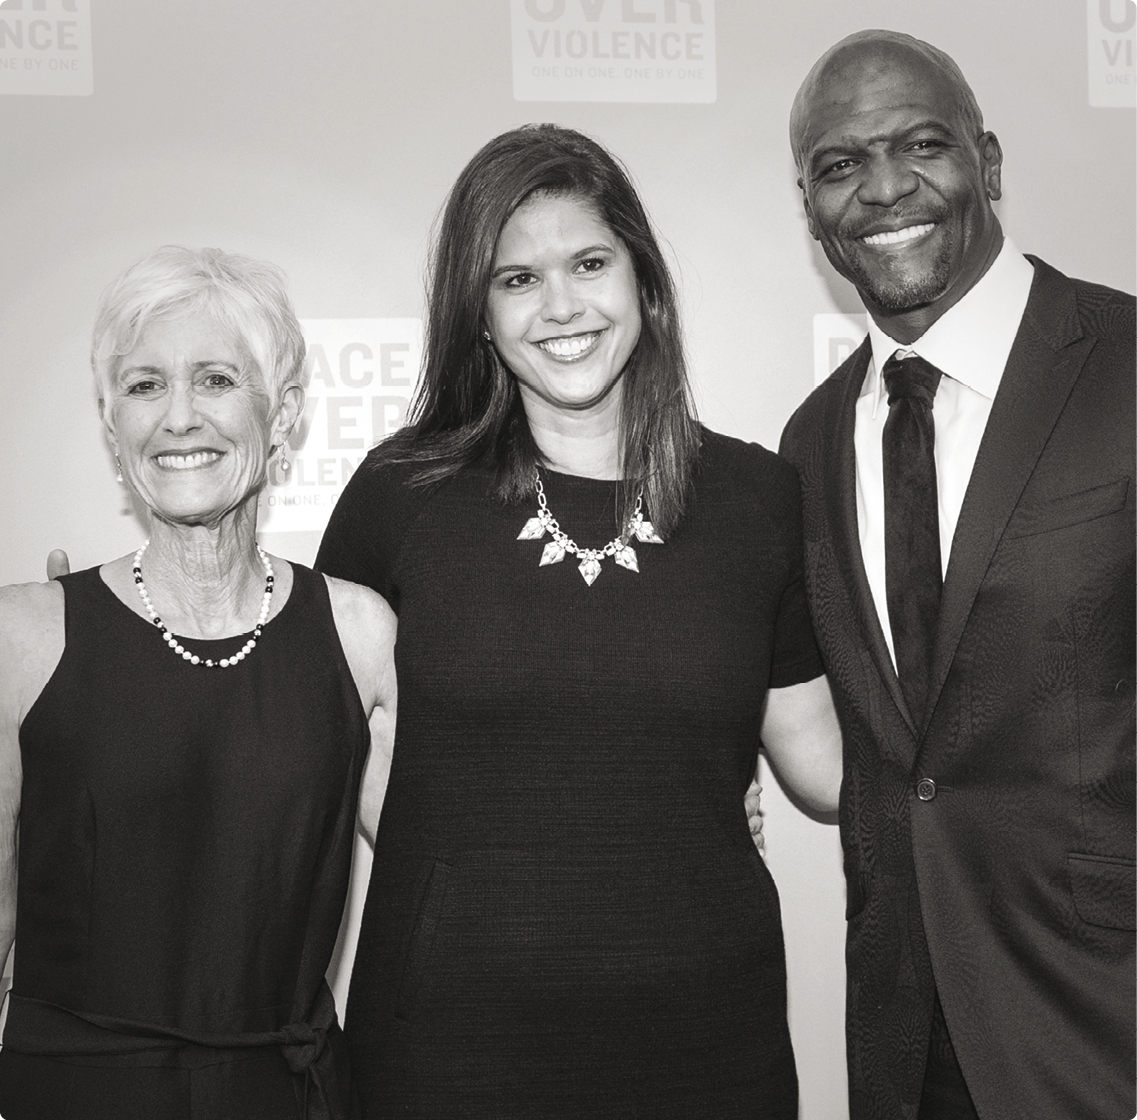 """An Evening Over Violence"" honorees Cathy Friedman, ESPN's Alison Overholdt and Terry Crews at The NoMad Los Angeles."